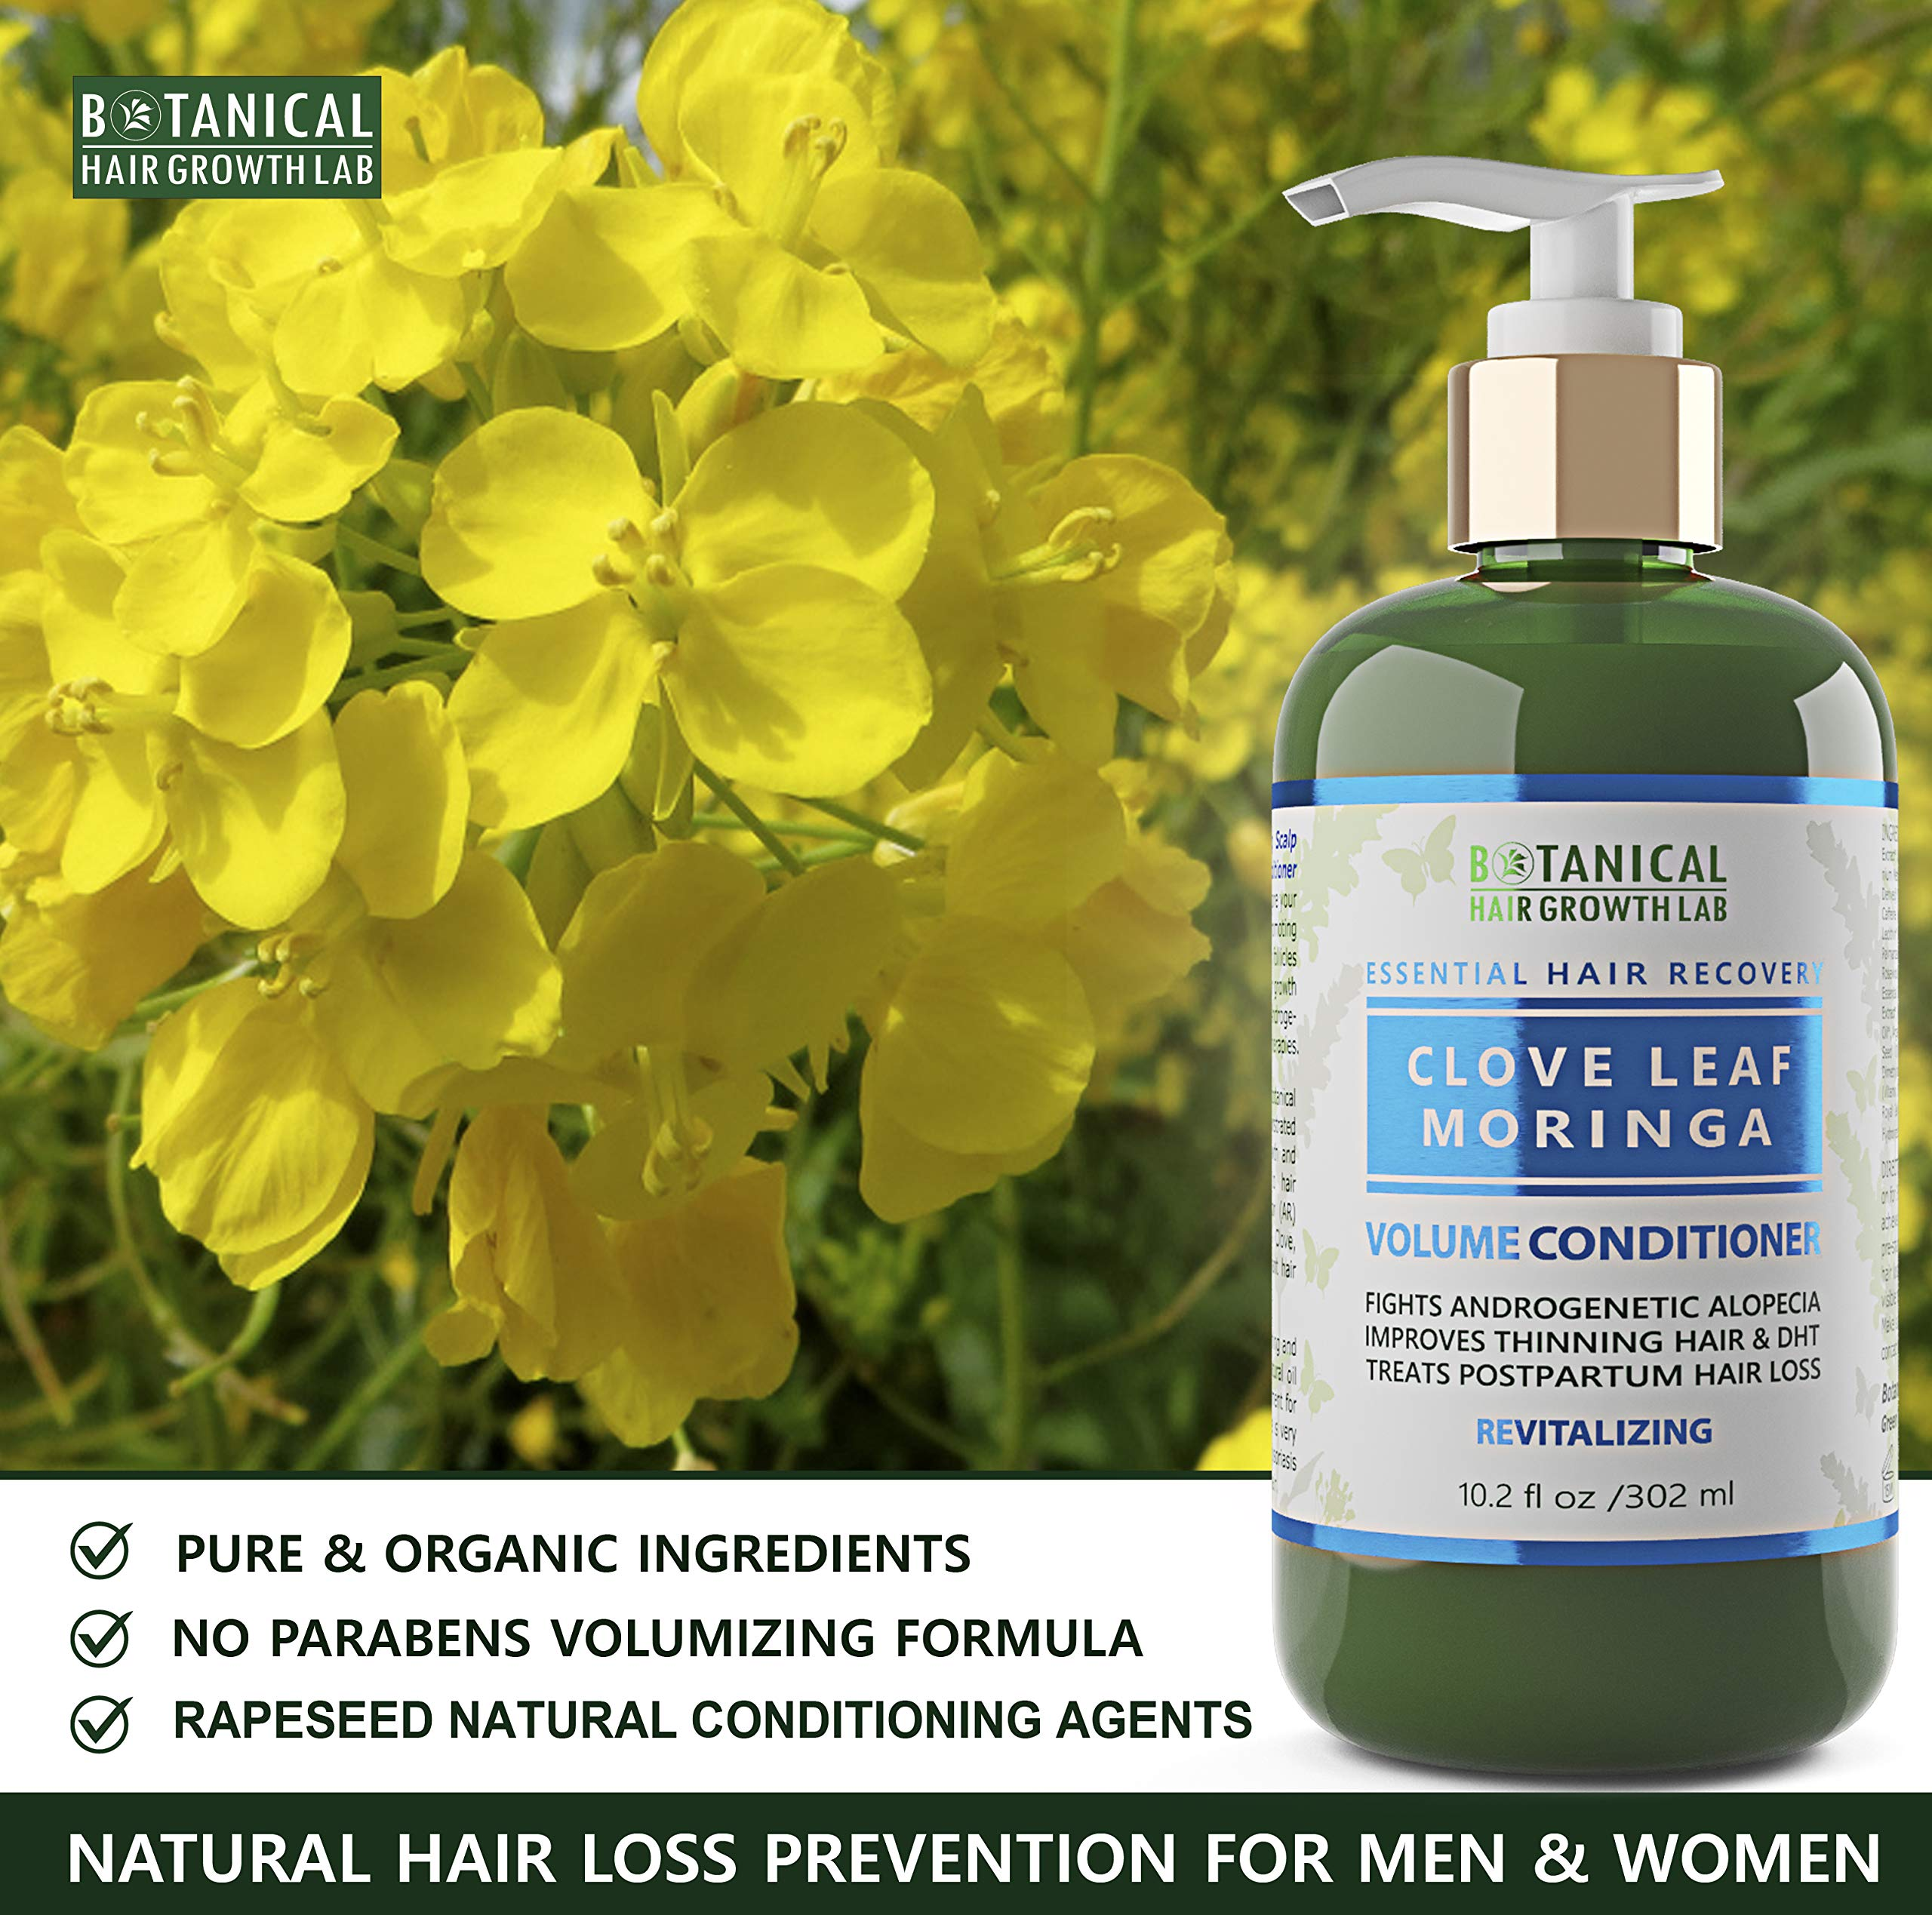 Botanical Hair Growth Lab Biotin Conditioner - Clove Leaf Moringa Formula - Anti Hair Loss Complex - DHT Blockers, Sulfate Free, Natural Ingredients for Men & Women by BOTANICAL HAIR GROWTH LAB (Image #6)